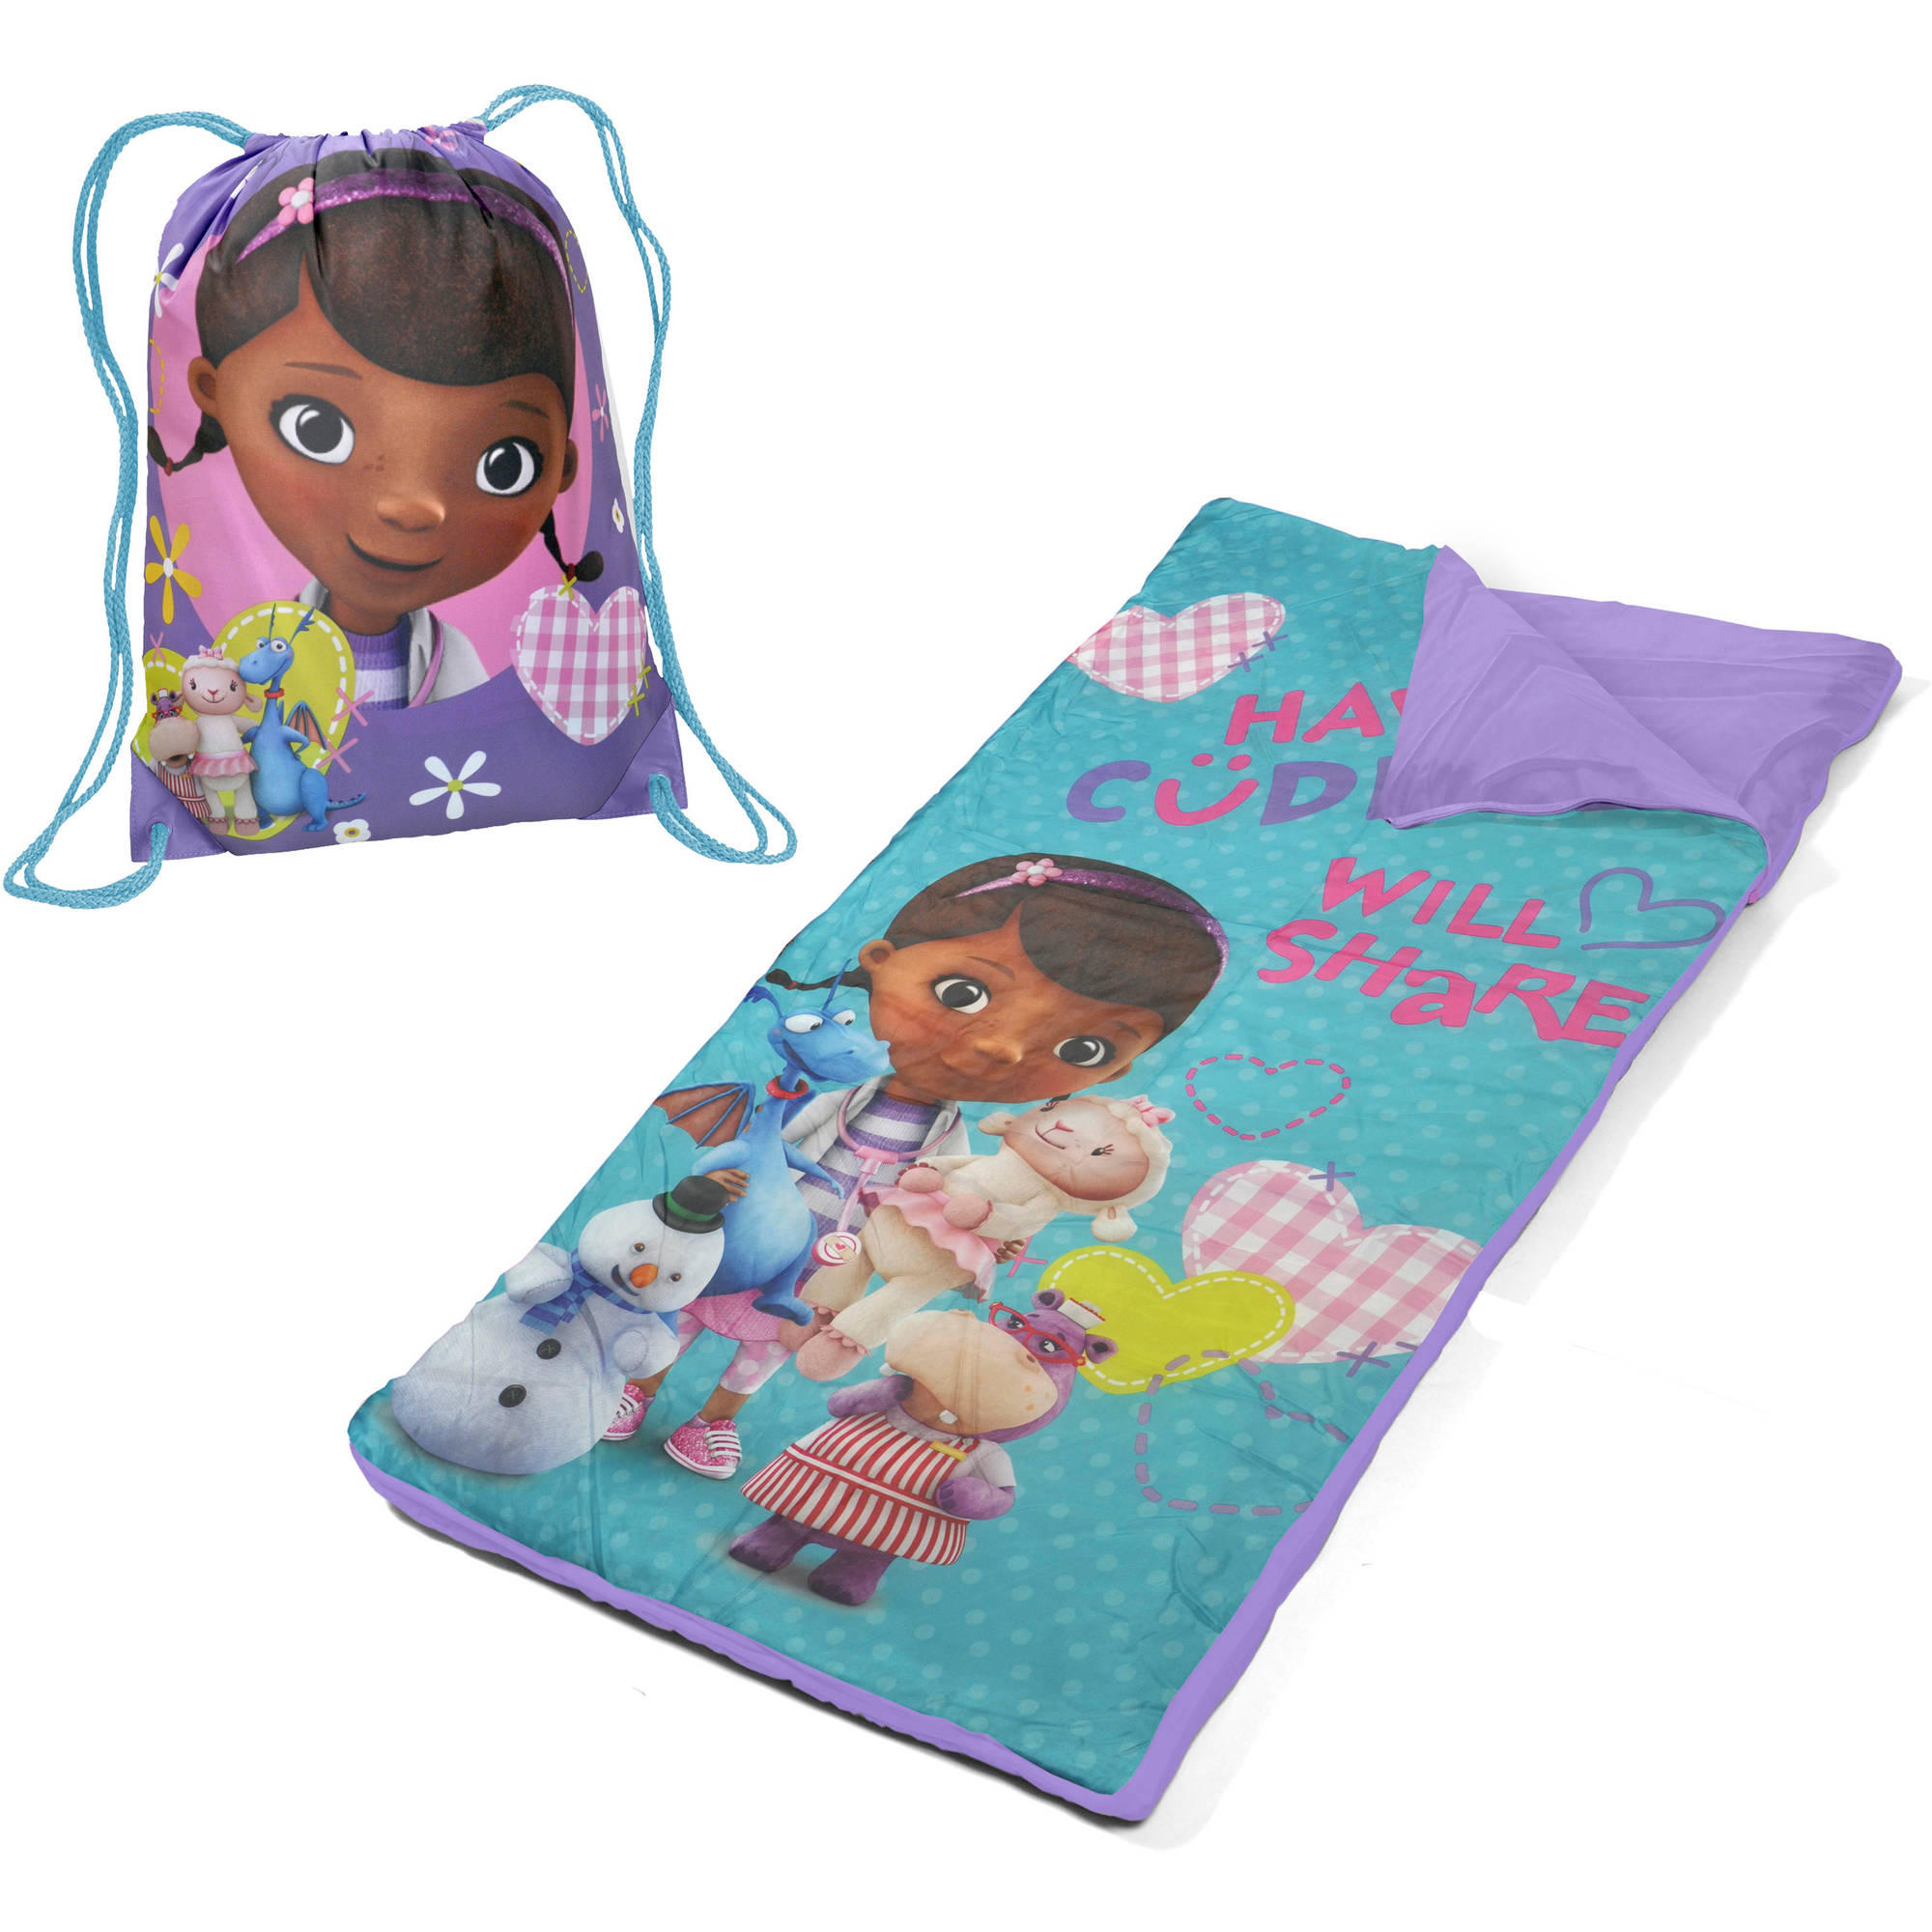 Disney Princess Slumber Set/Nap Mat with BONUS Sling Bag - Walmart.com